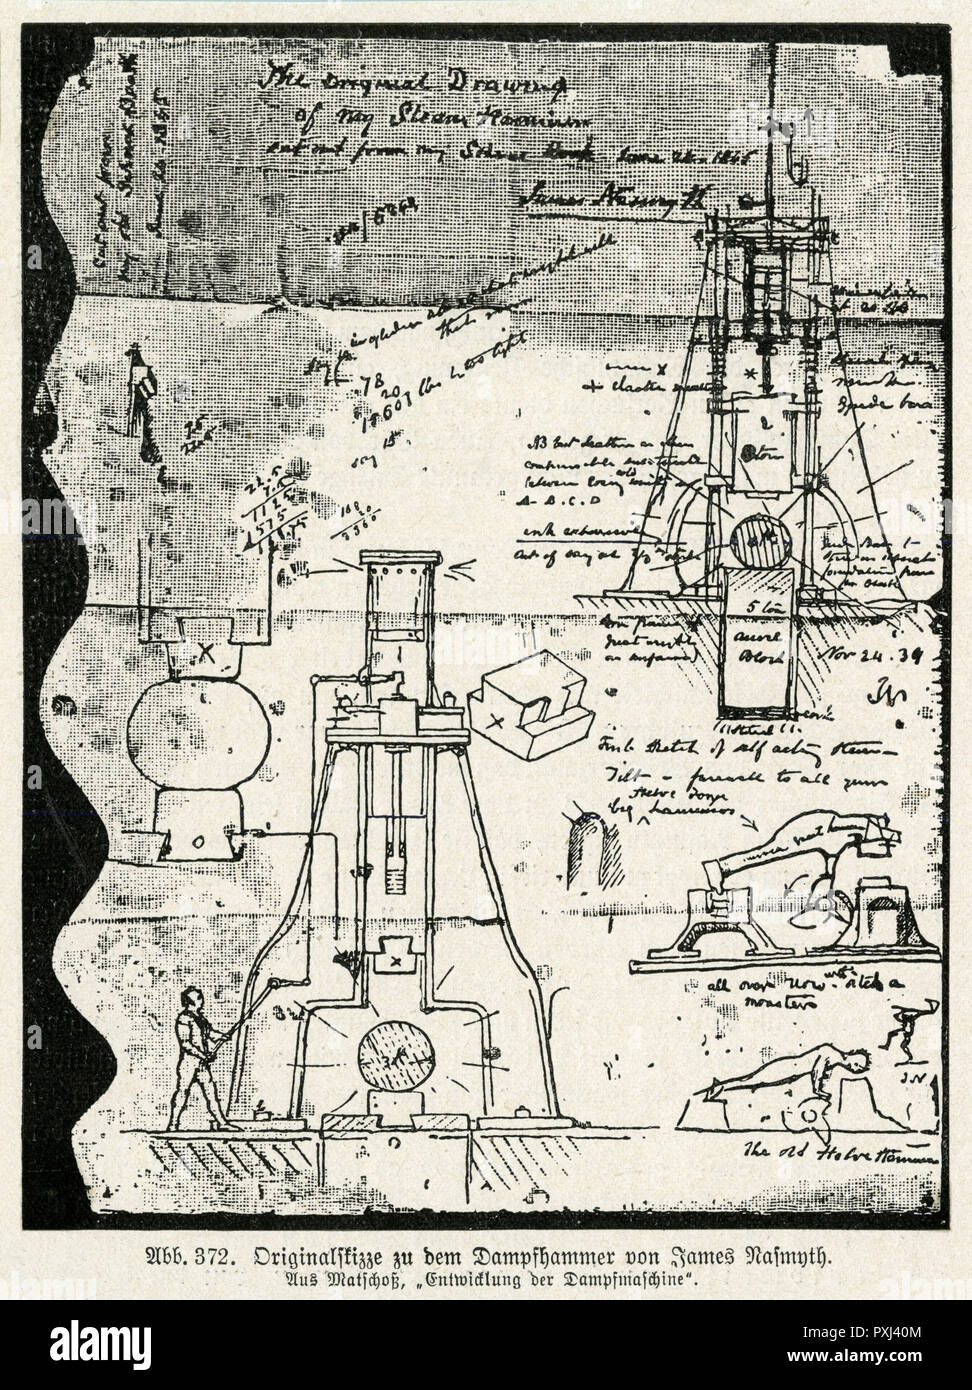 STEAM HAMMER - Original drawings for Nasmyth's Steam Hammer. Stock Photo